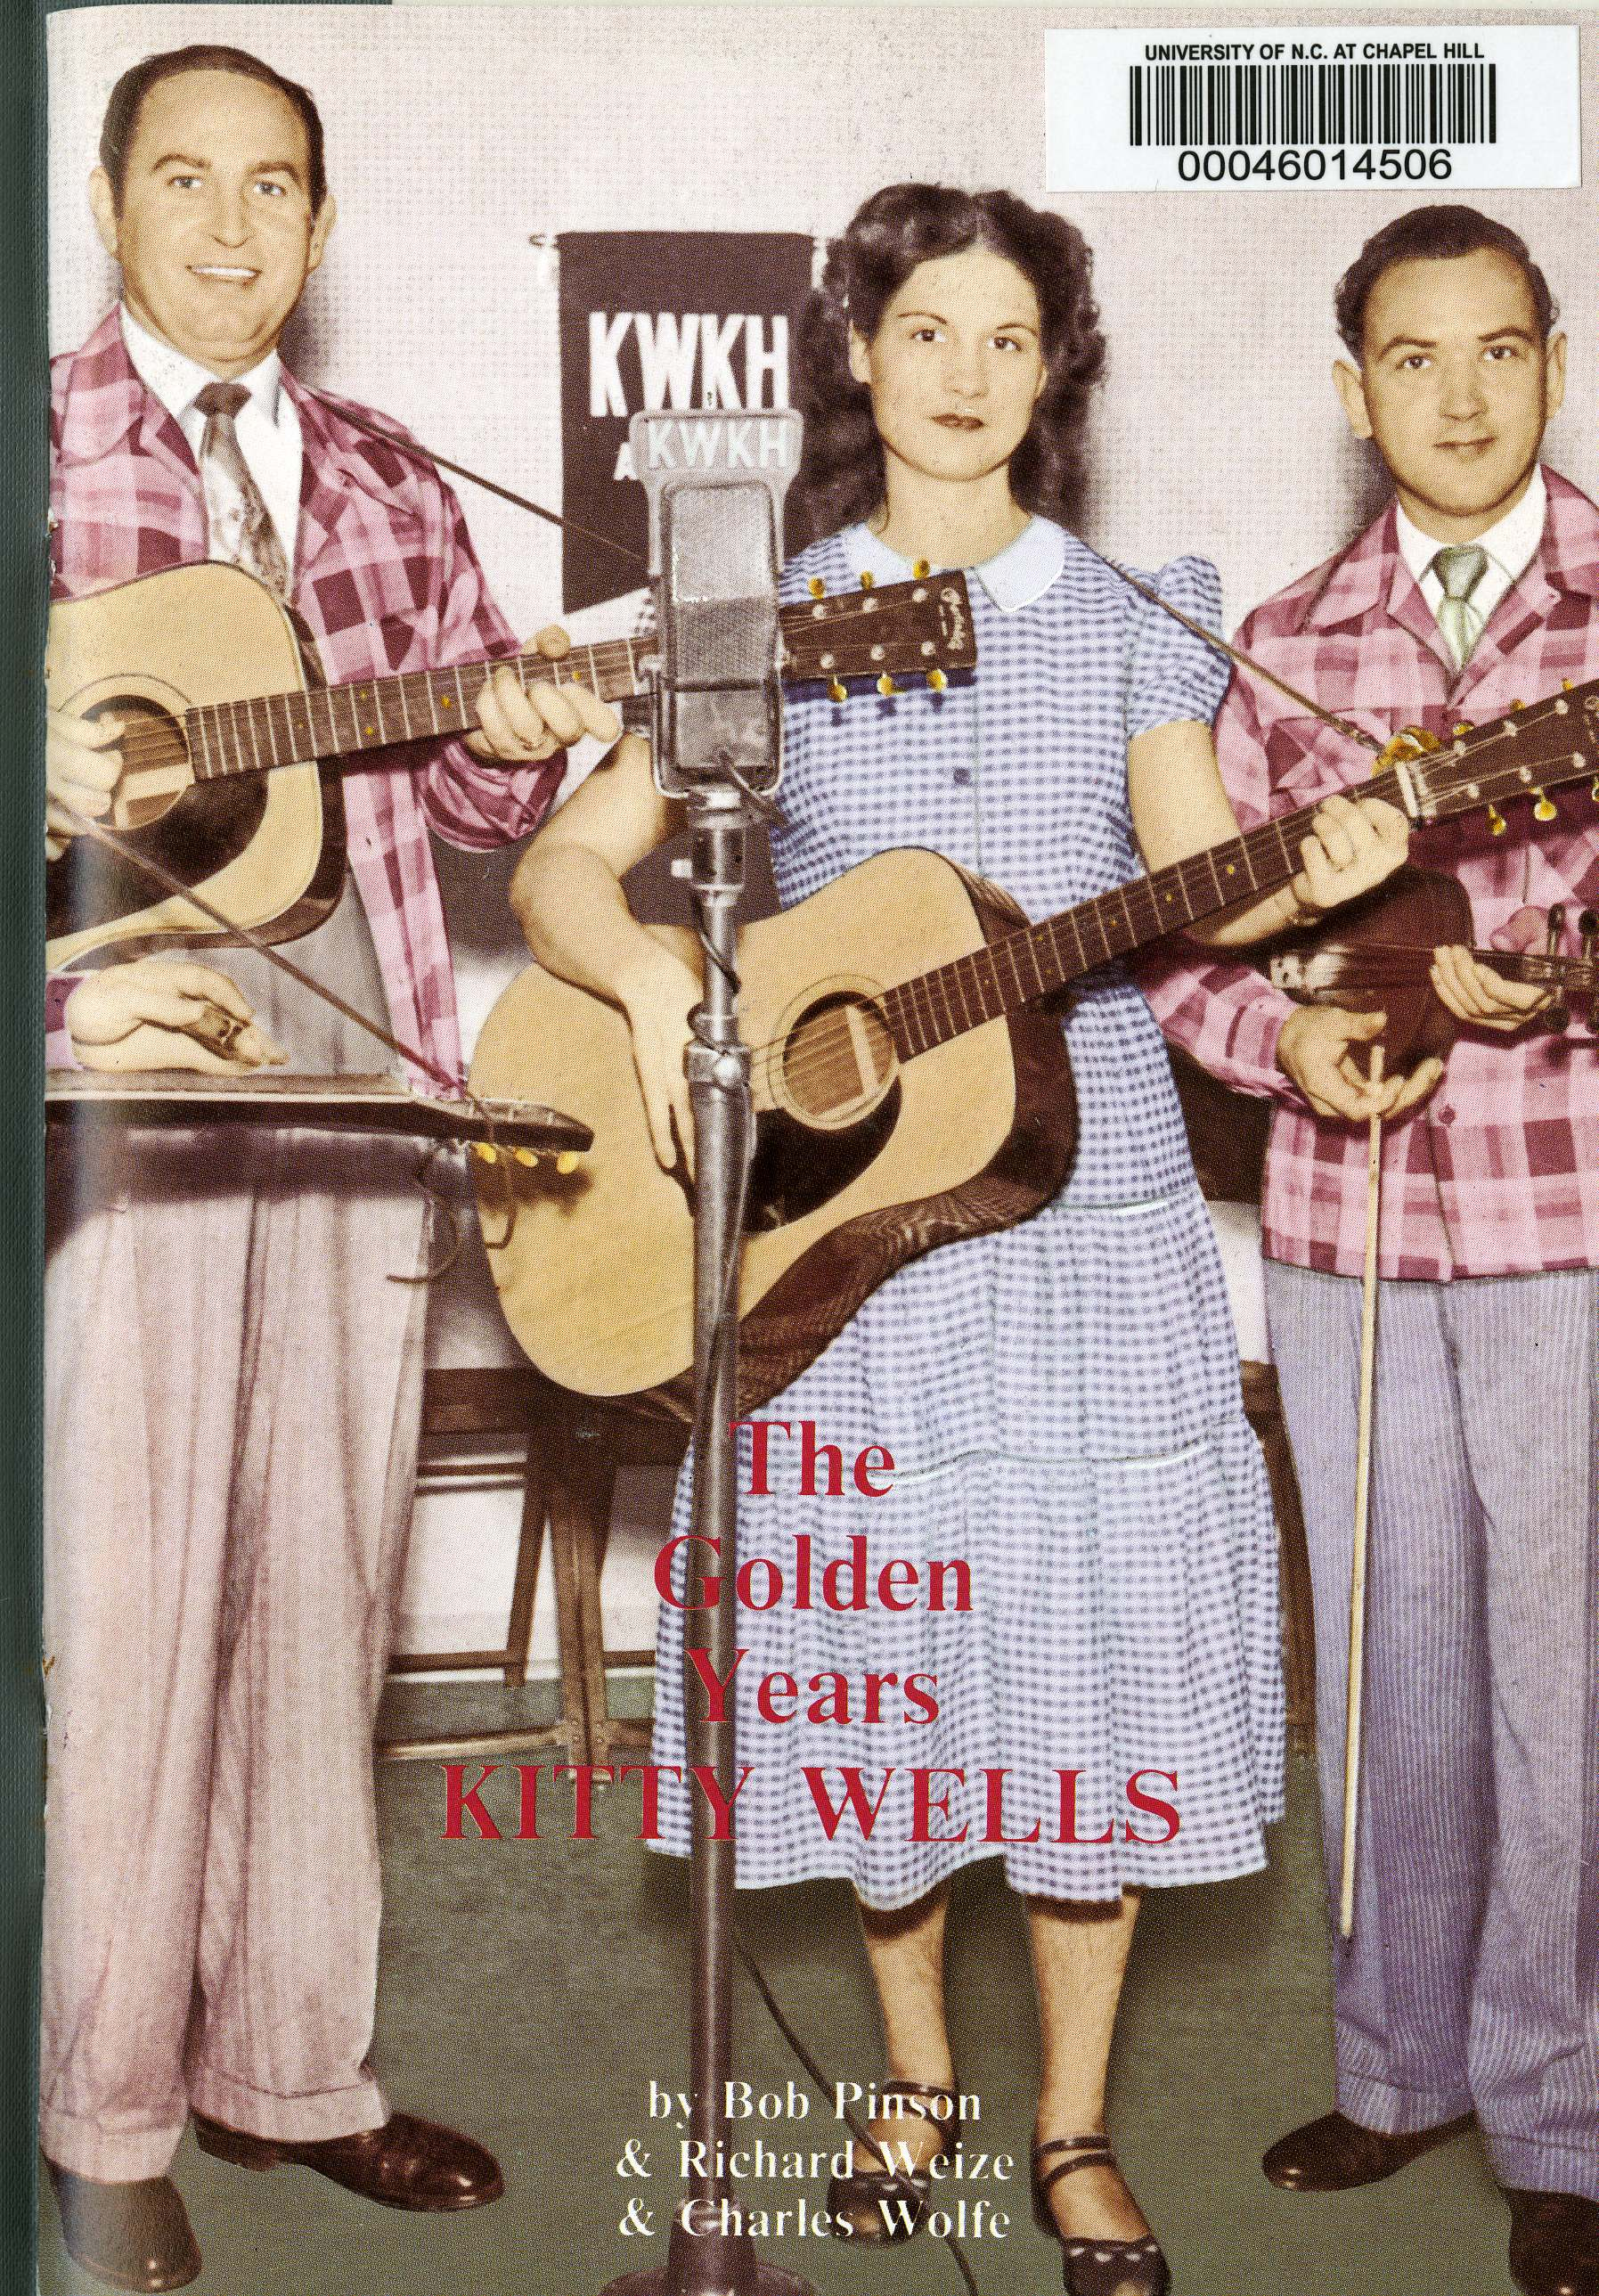 ML420W38_The_Golden_Years007_Southern_Folklife_Collection